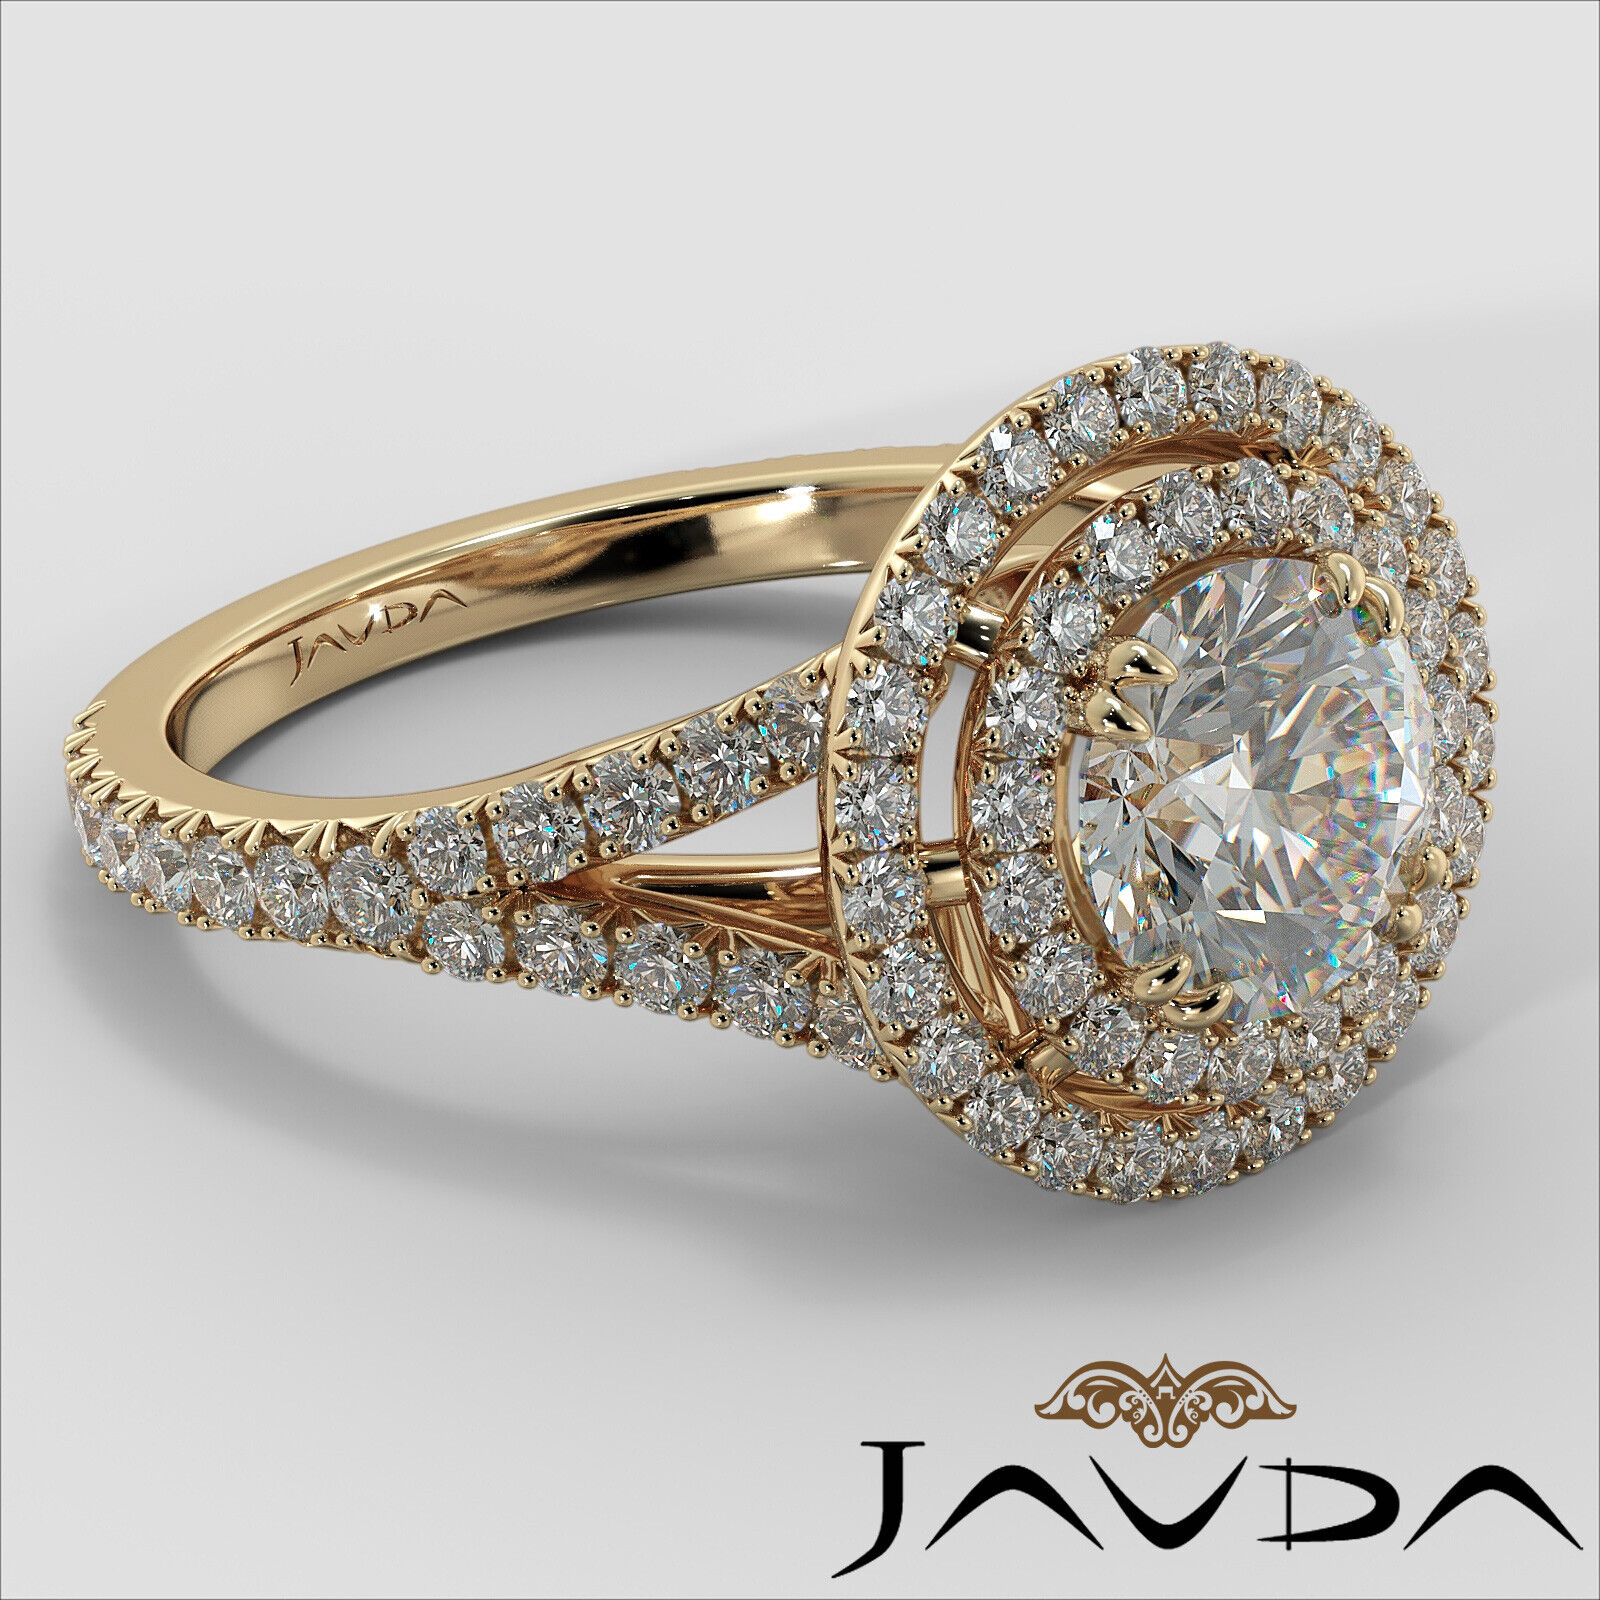 2.05ct French Pave Gala Halo Round Diamond Engagement Ring GIA F-VVS1 White Gold 9